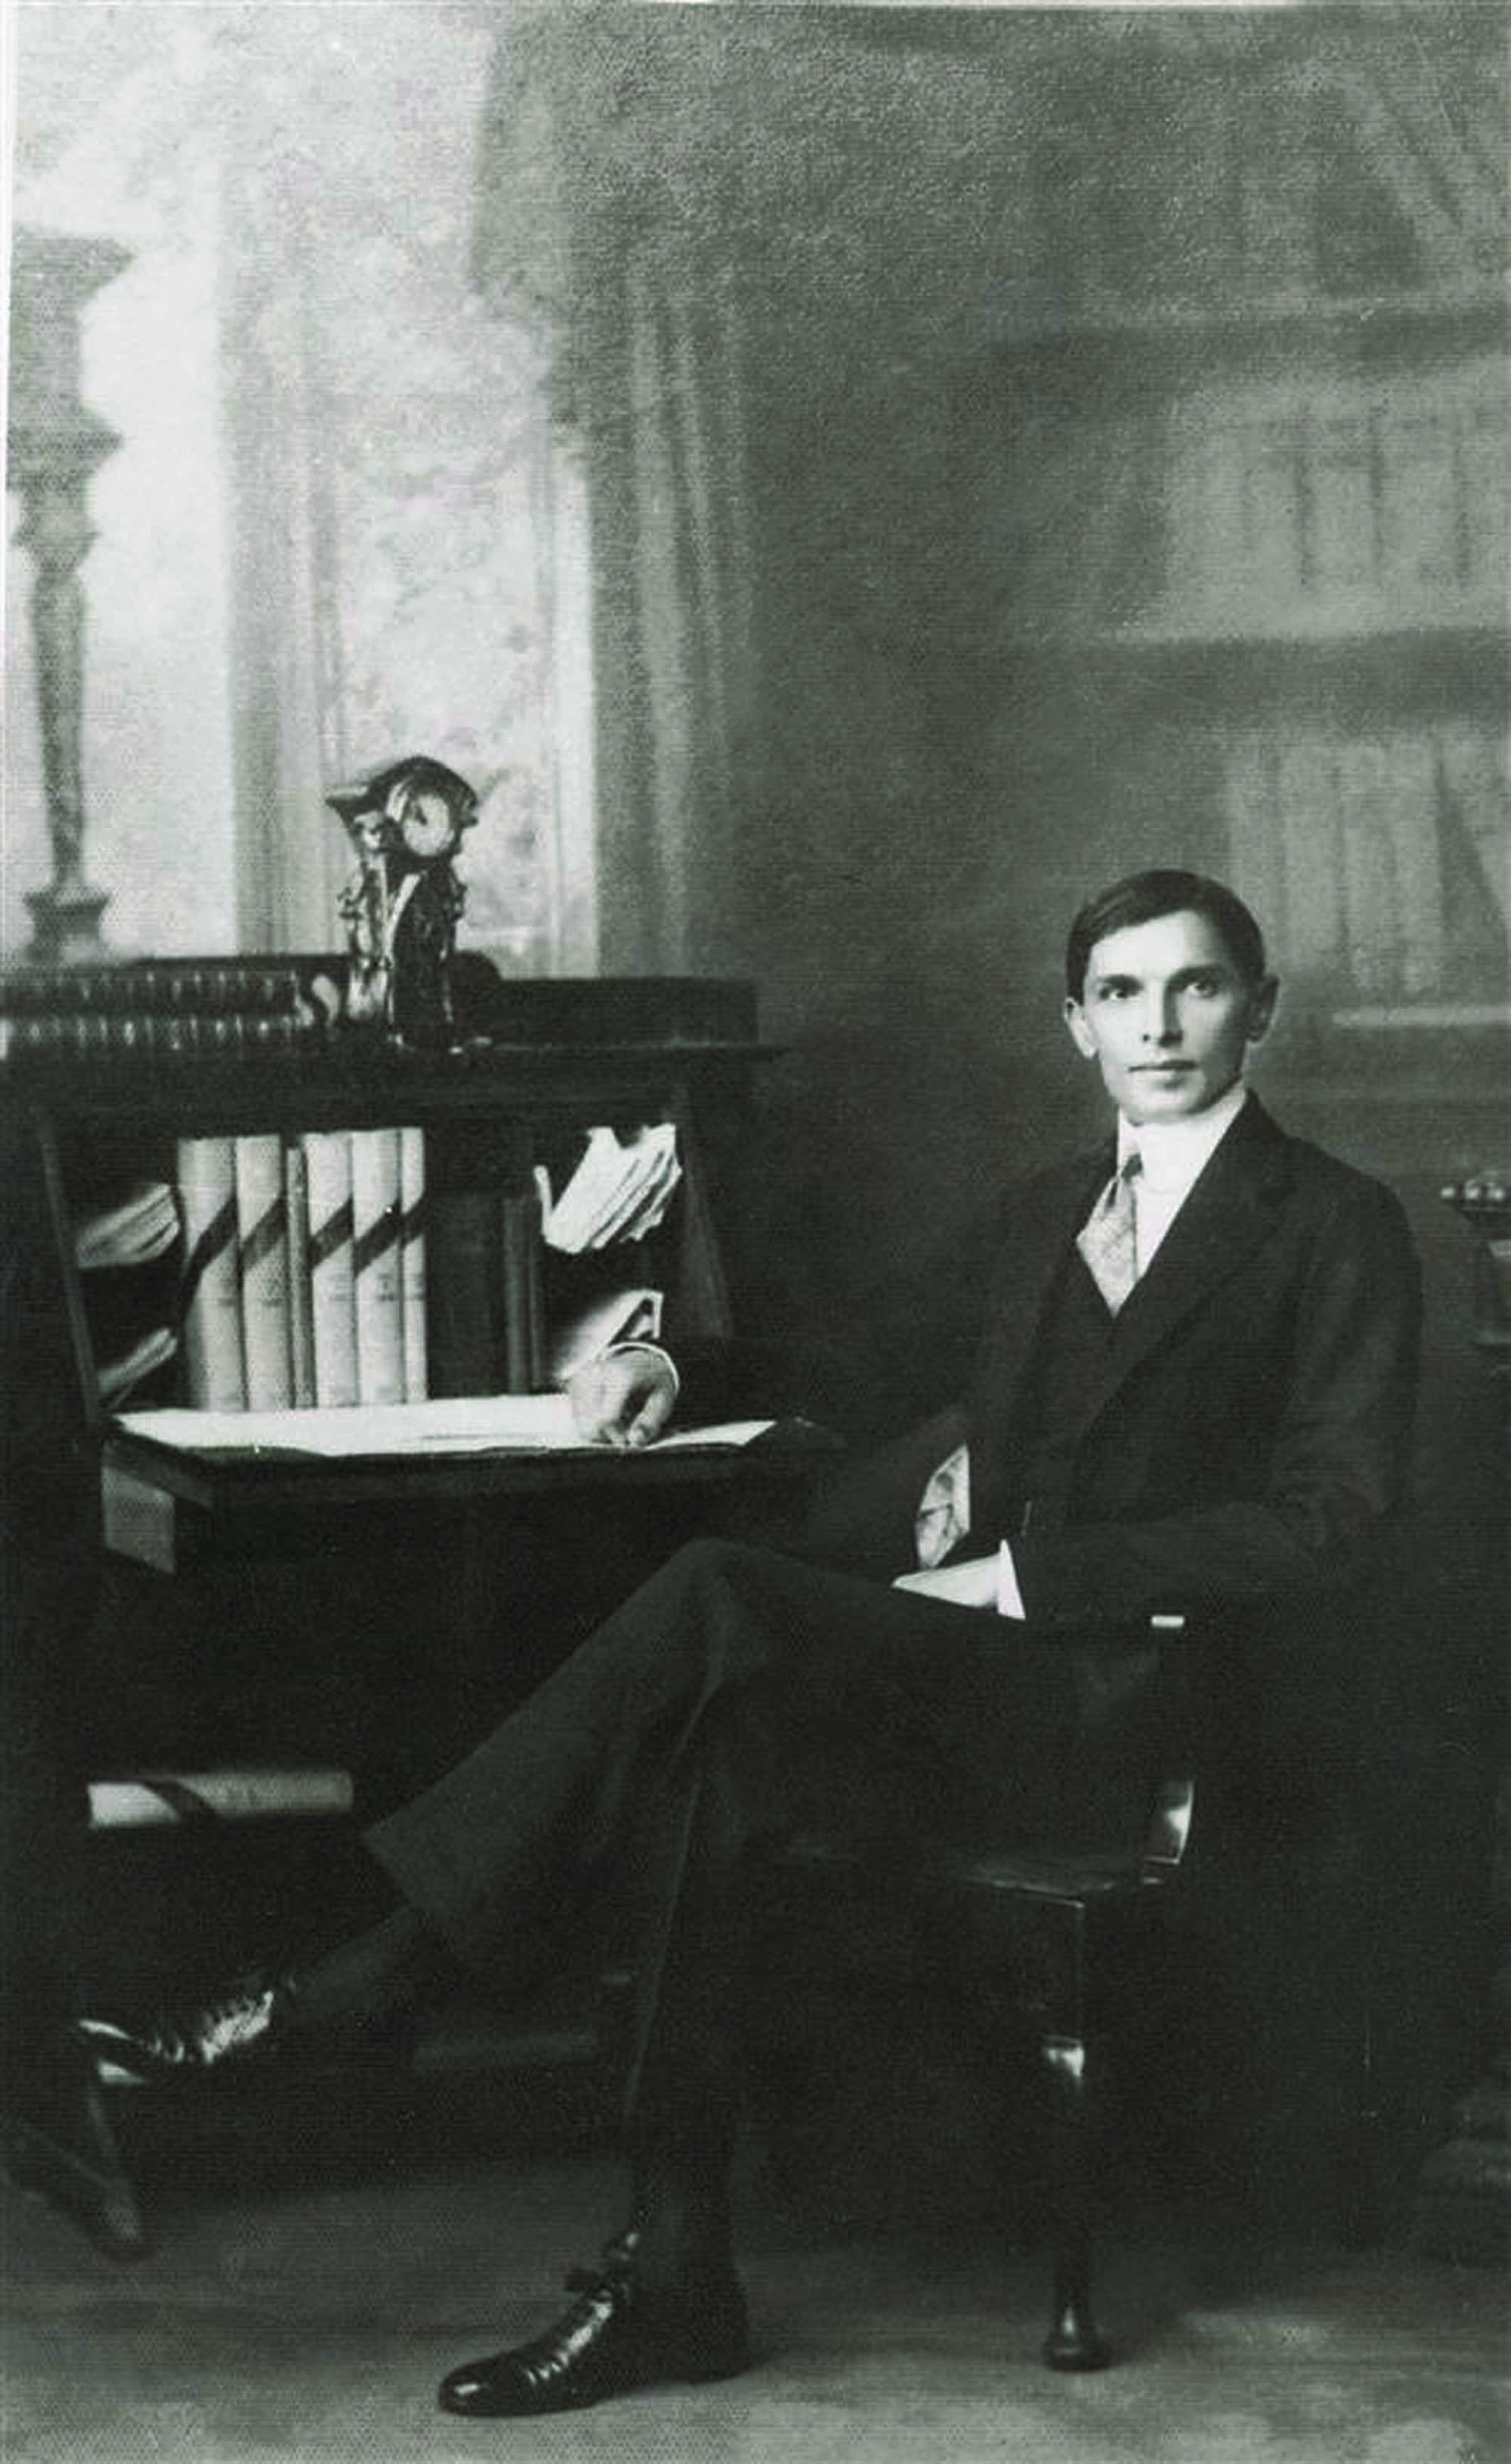 BOMBAY'S BOY BARRISTER: After becoming the youngest 'Indian' student to be called to the Bar on April 29, 1896, at Lincoln's Inn (London), Mr Jinnah moved to Bombay and began working as a lawyer. Within a few years, he became one of the leading lawyers in the subcontinent.